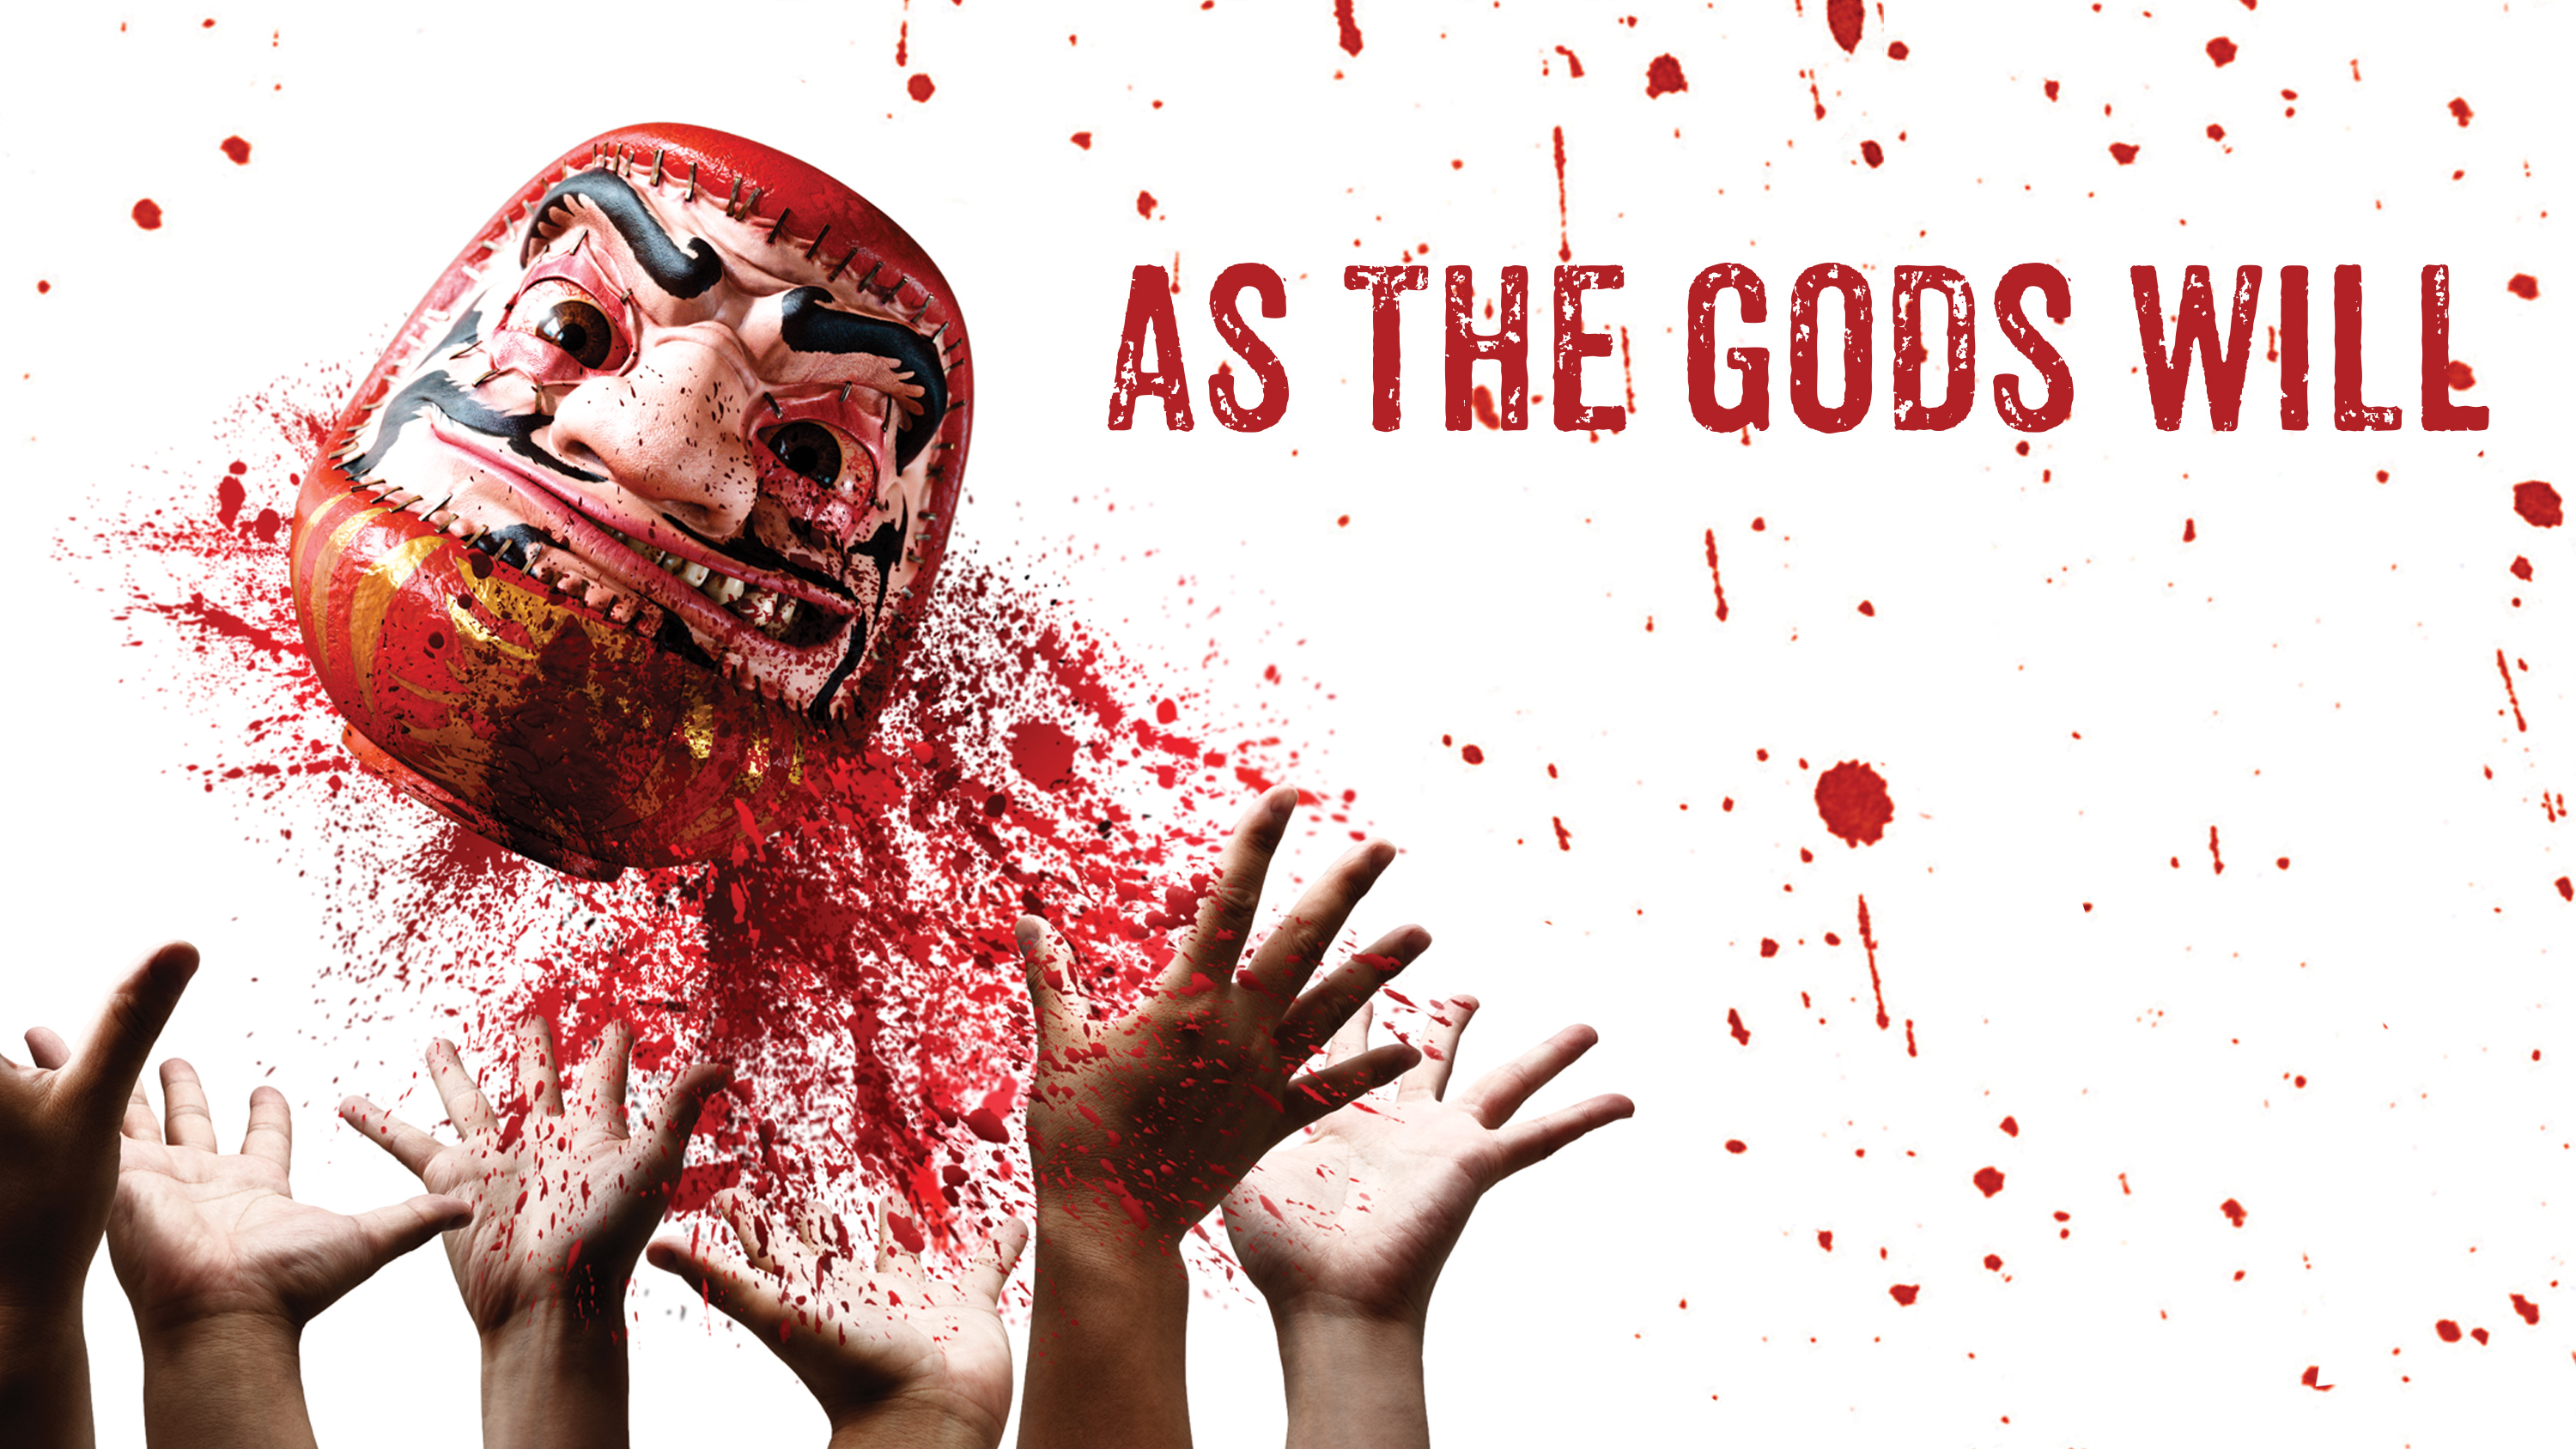 As the gods will movie in hindi download